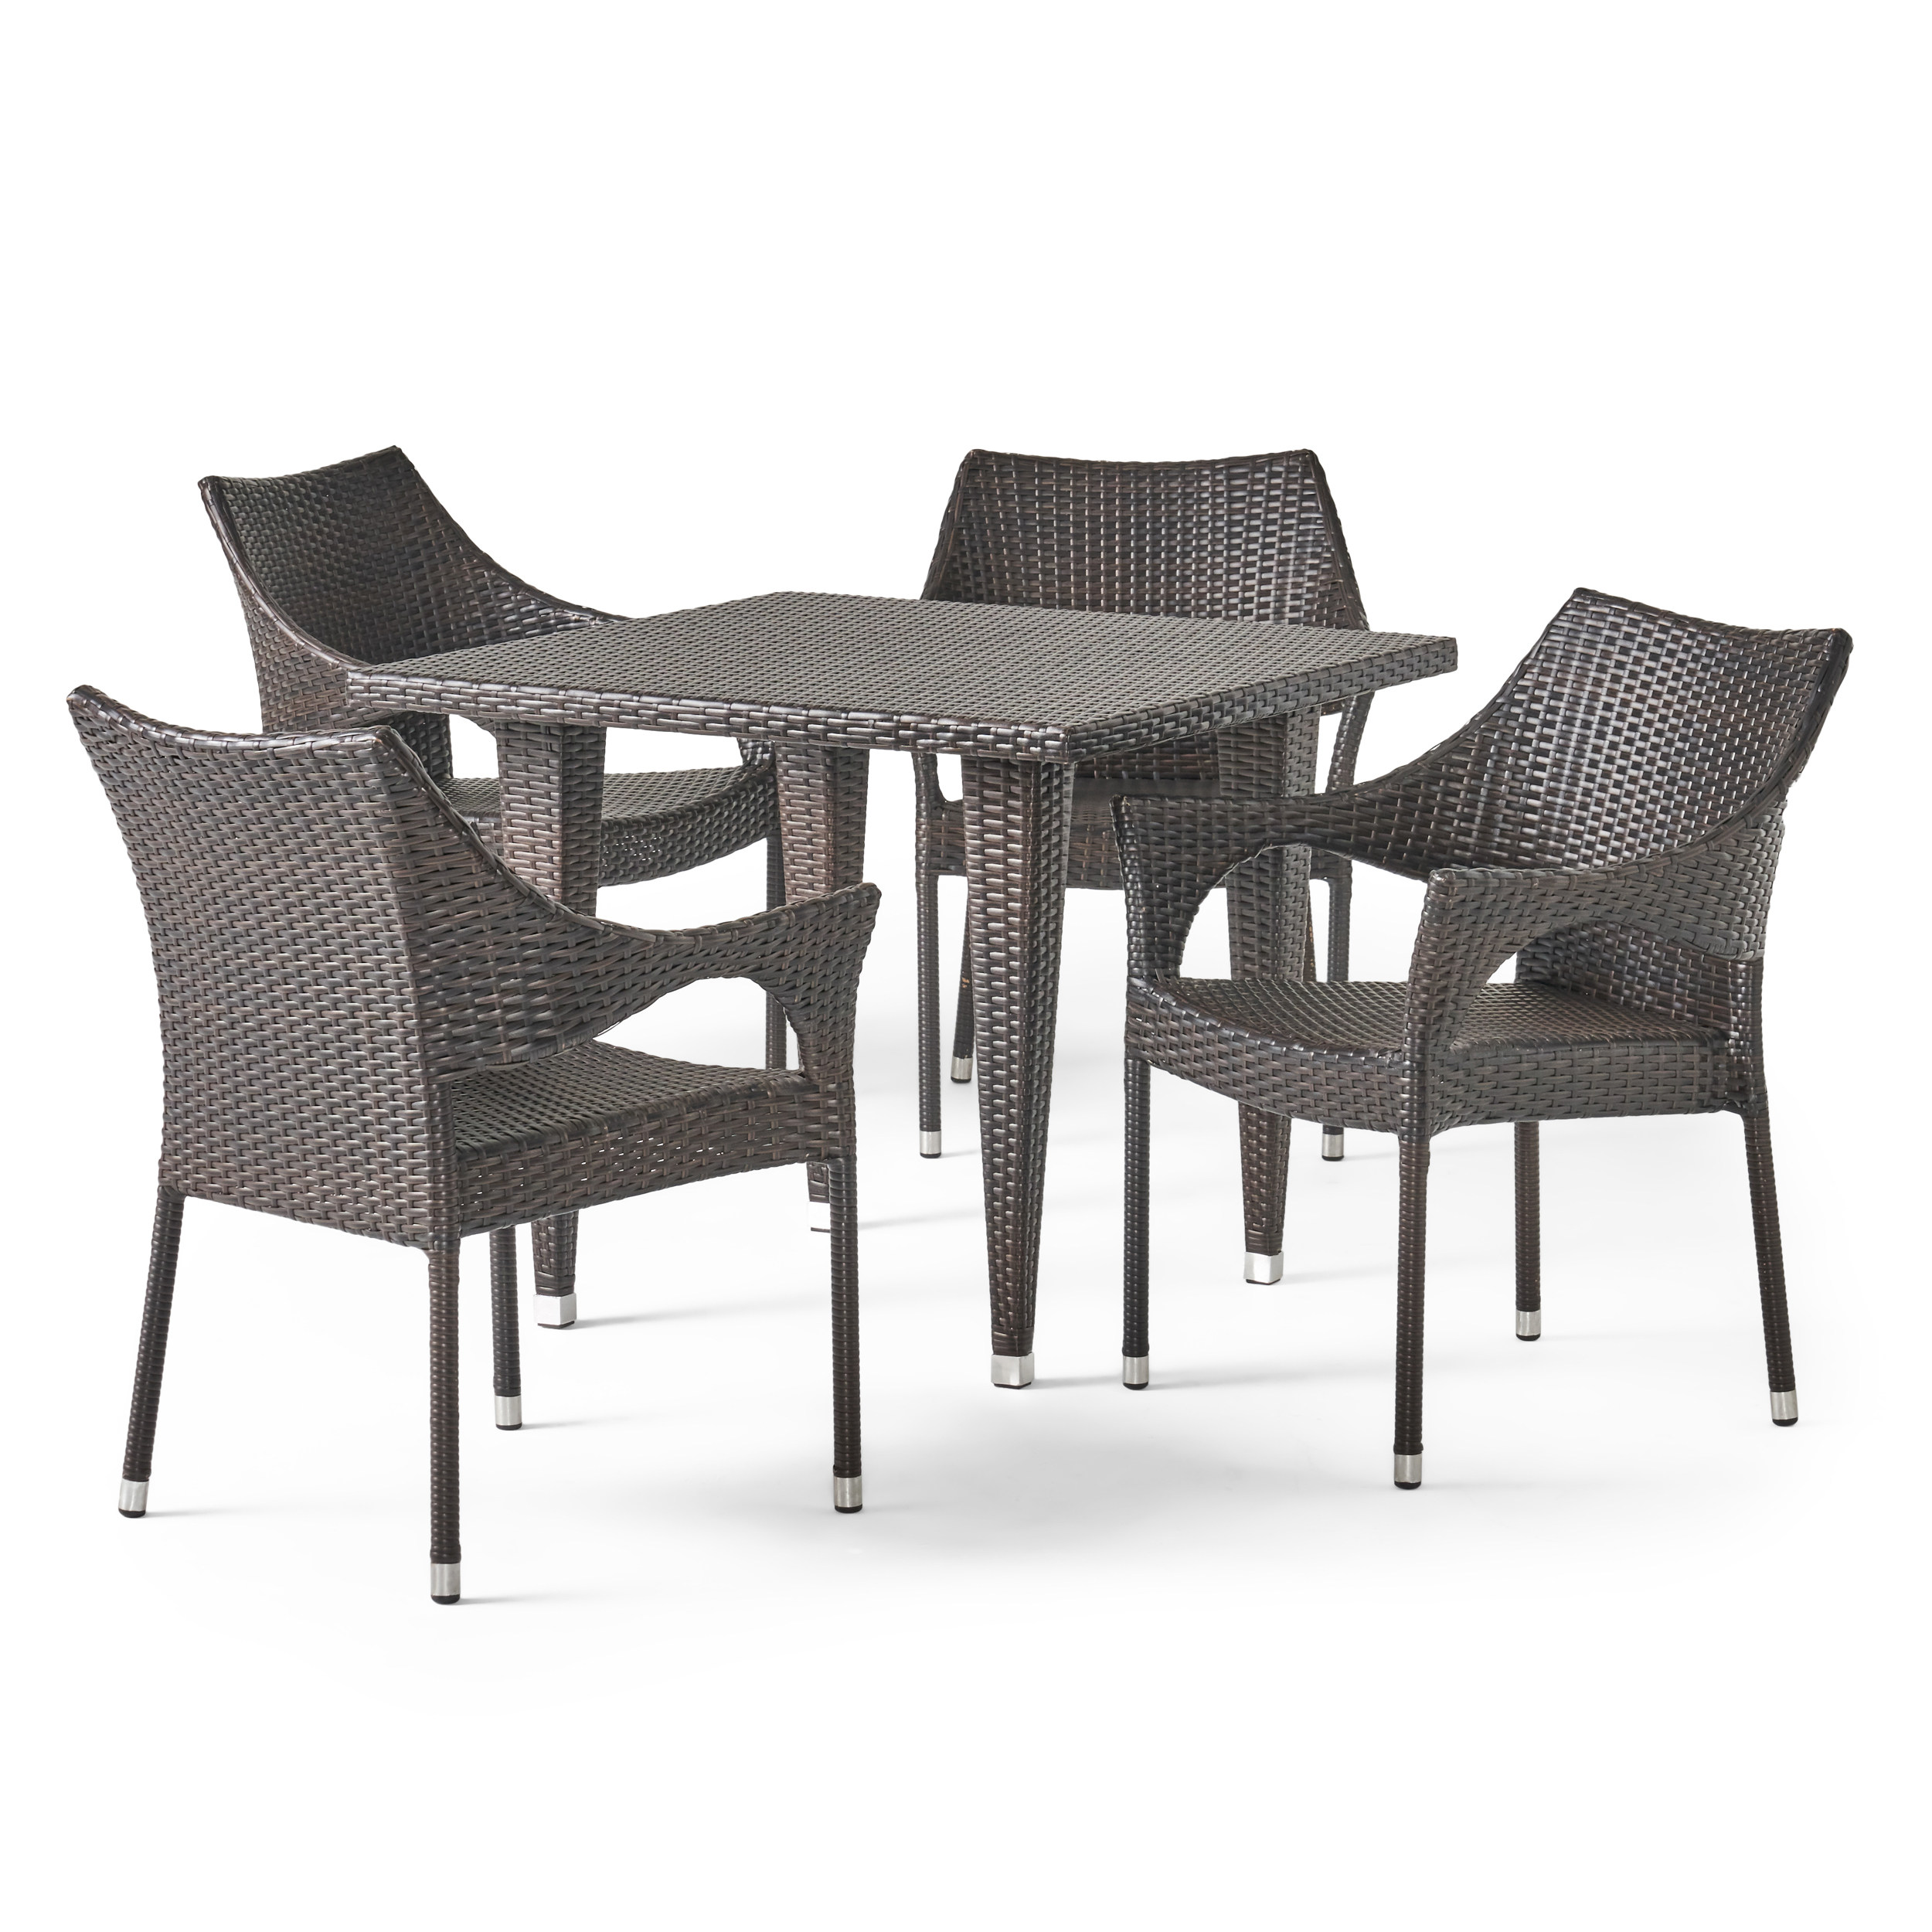 Cliff All Weather Wicker Patio Dining Set Seats 4